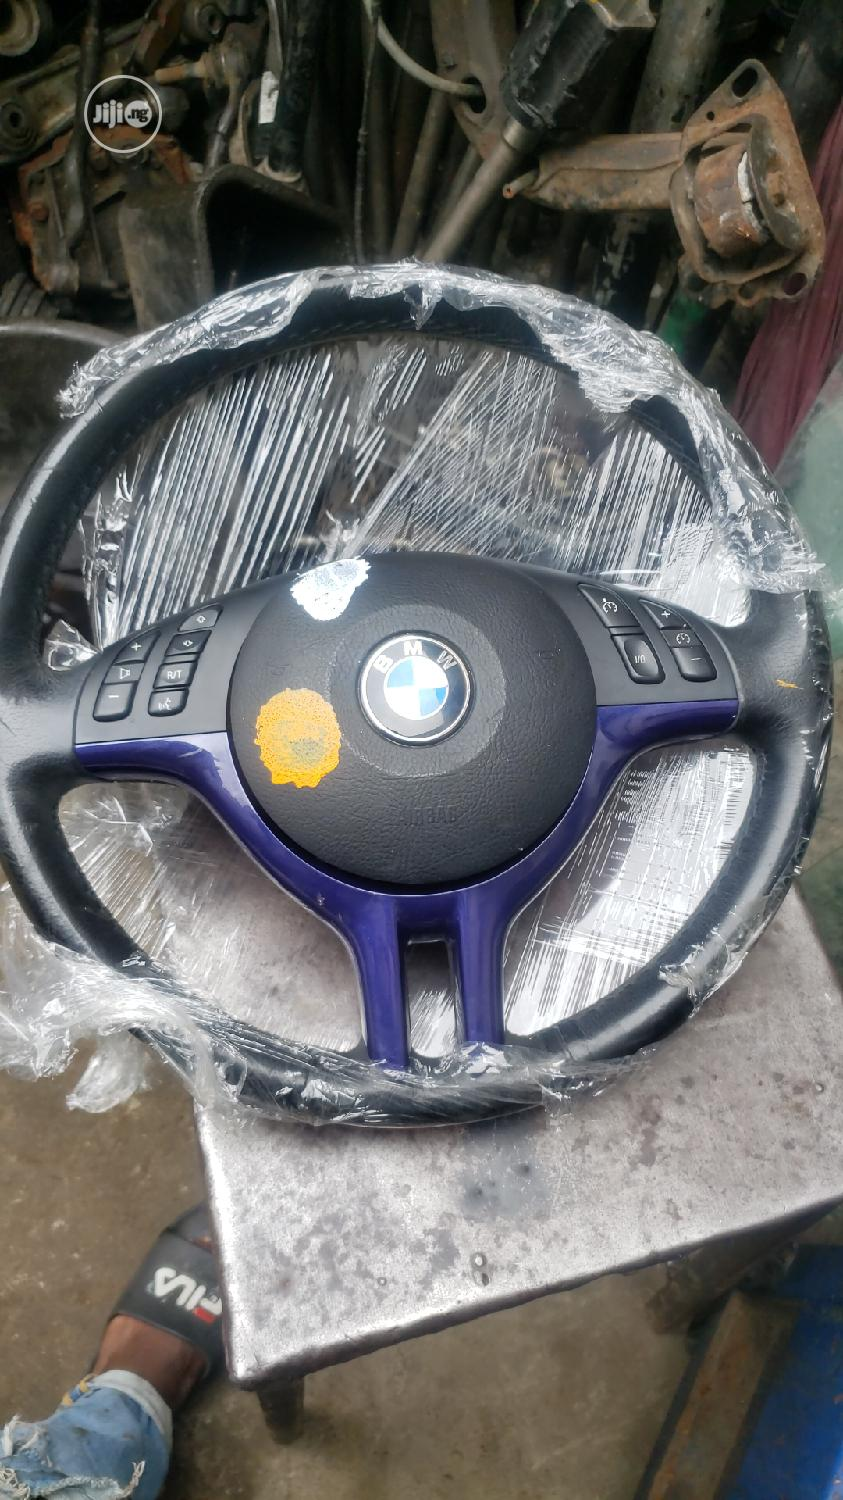 Bmw E46 Steering Wheel And Front Grille In Mushin Vehicle Parts Accessories Ache Ebuka Jiji Ng